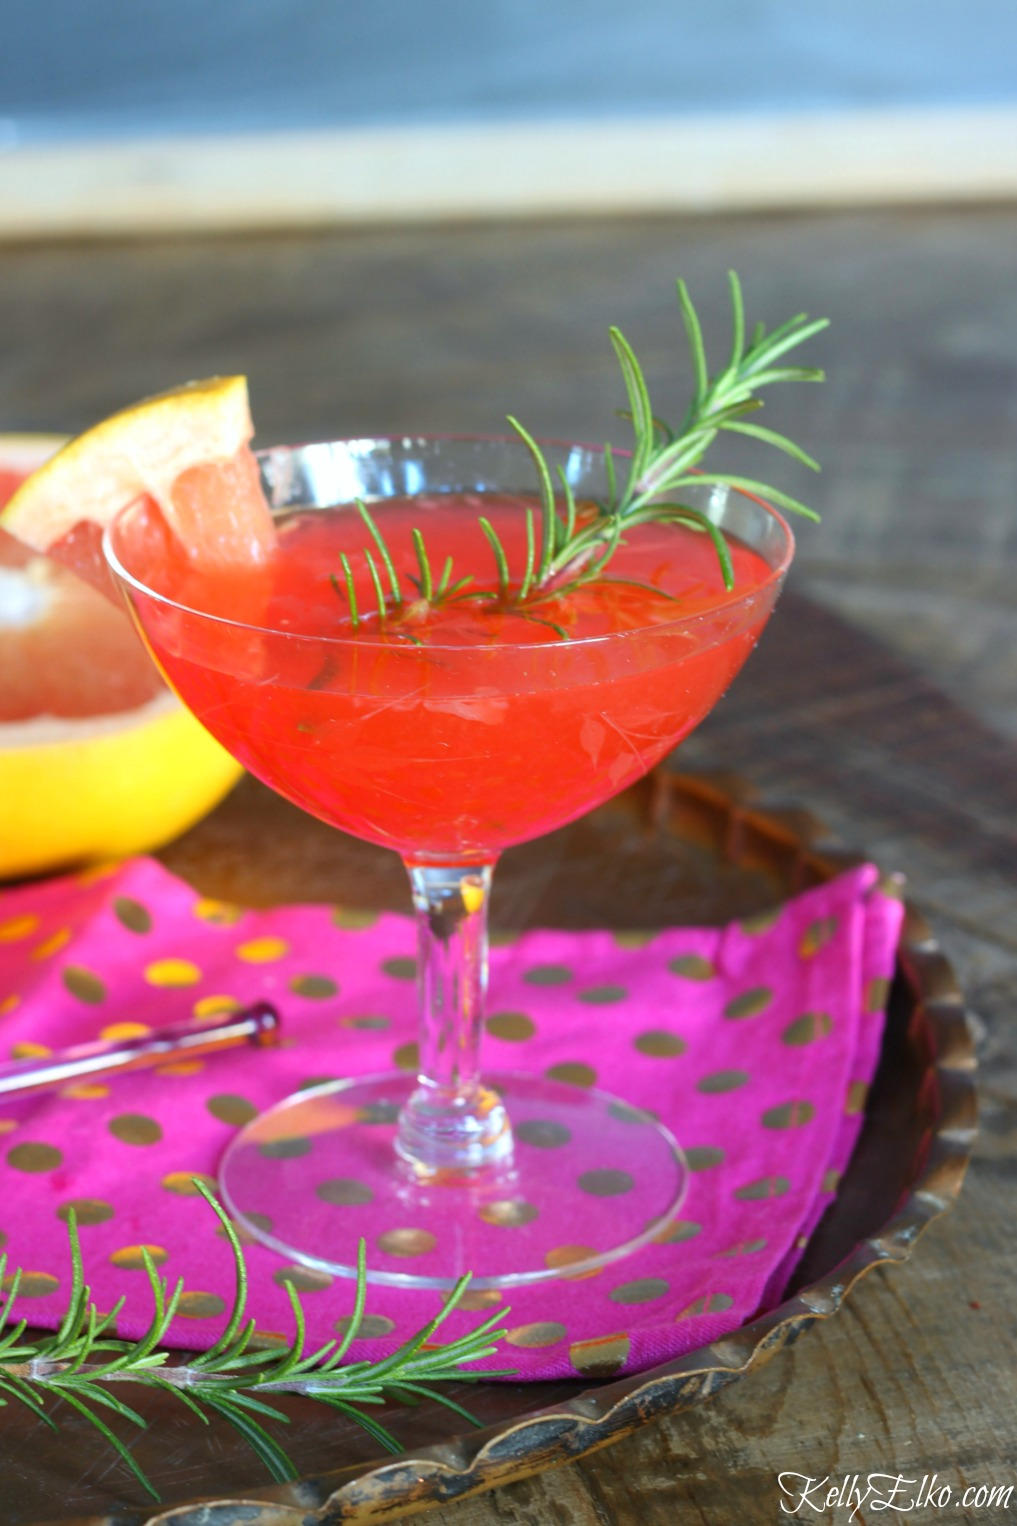 Festive Grapefruit Cocktail